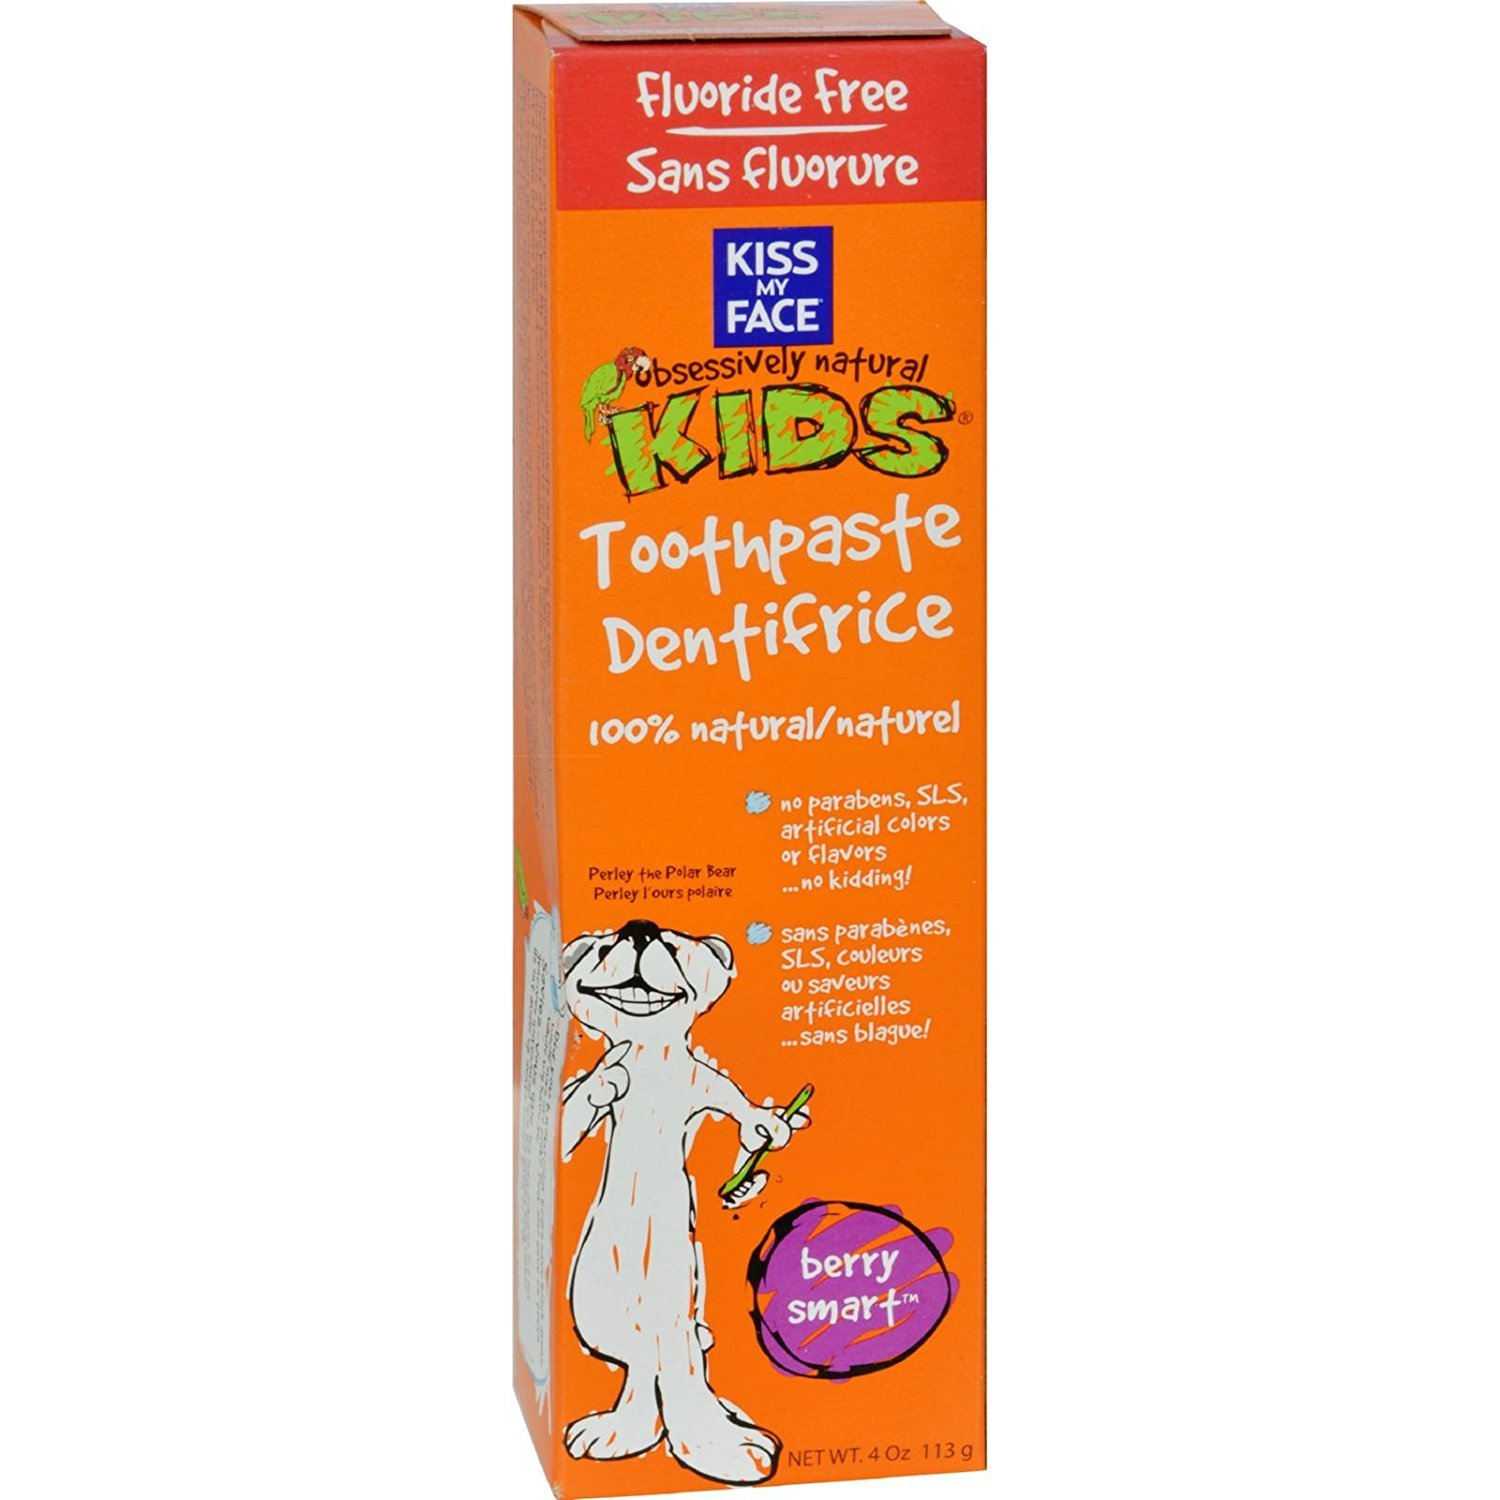 Pack of 2 x Kiss My Face Kids Toothpaste Fluoride Free Berry Smart - 4 oz S0456822N2PK